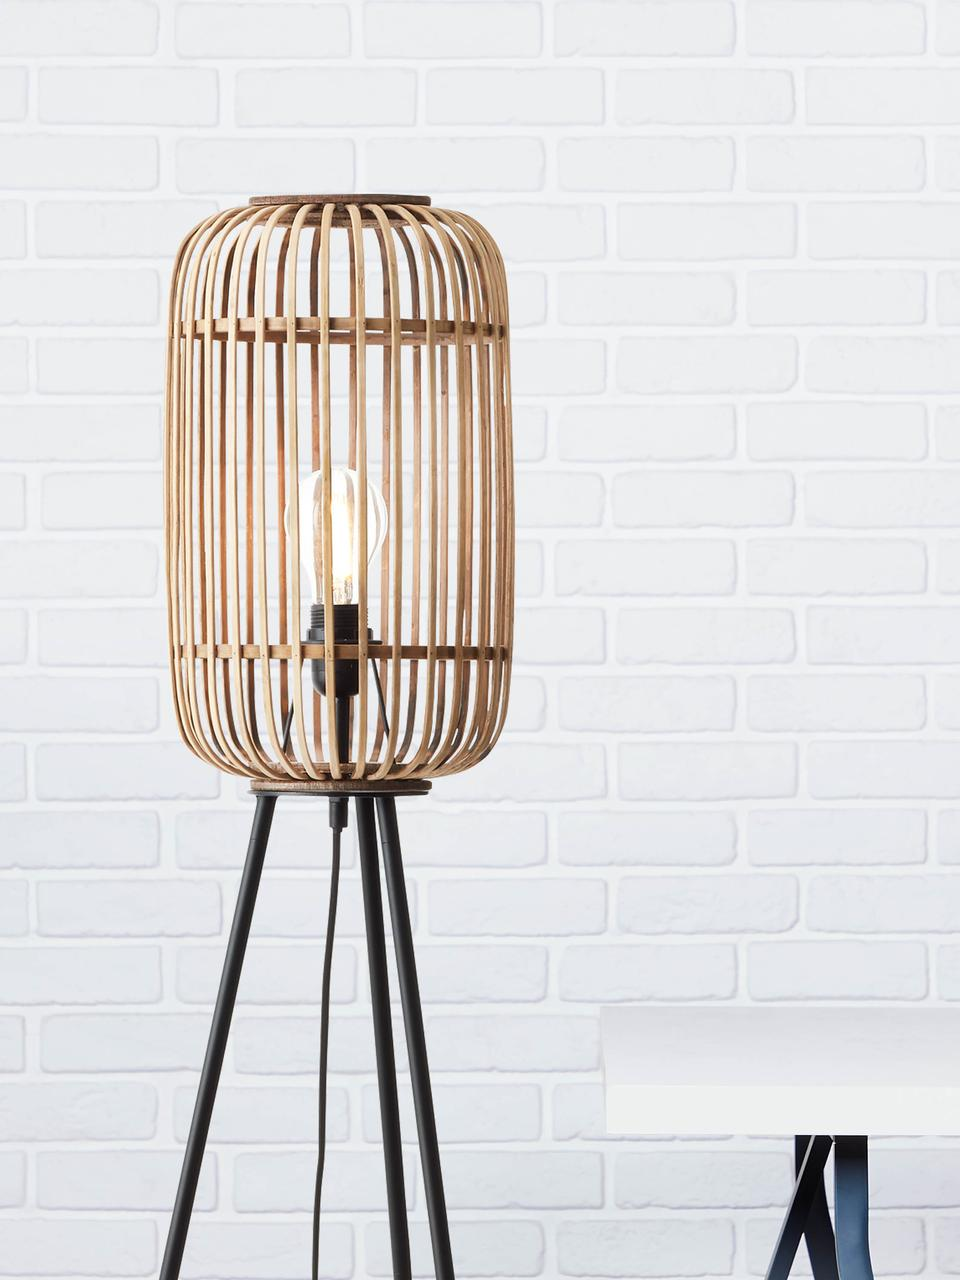 Boho Stehlampe Woodrow Mit Rattanschirm Westwingnow